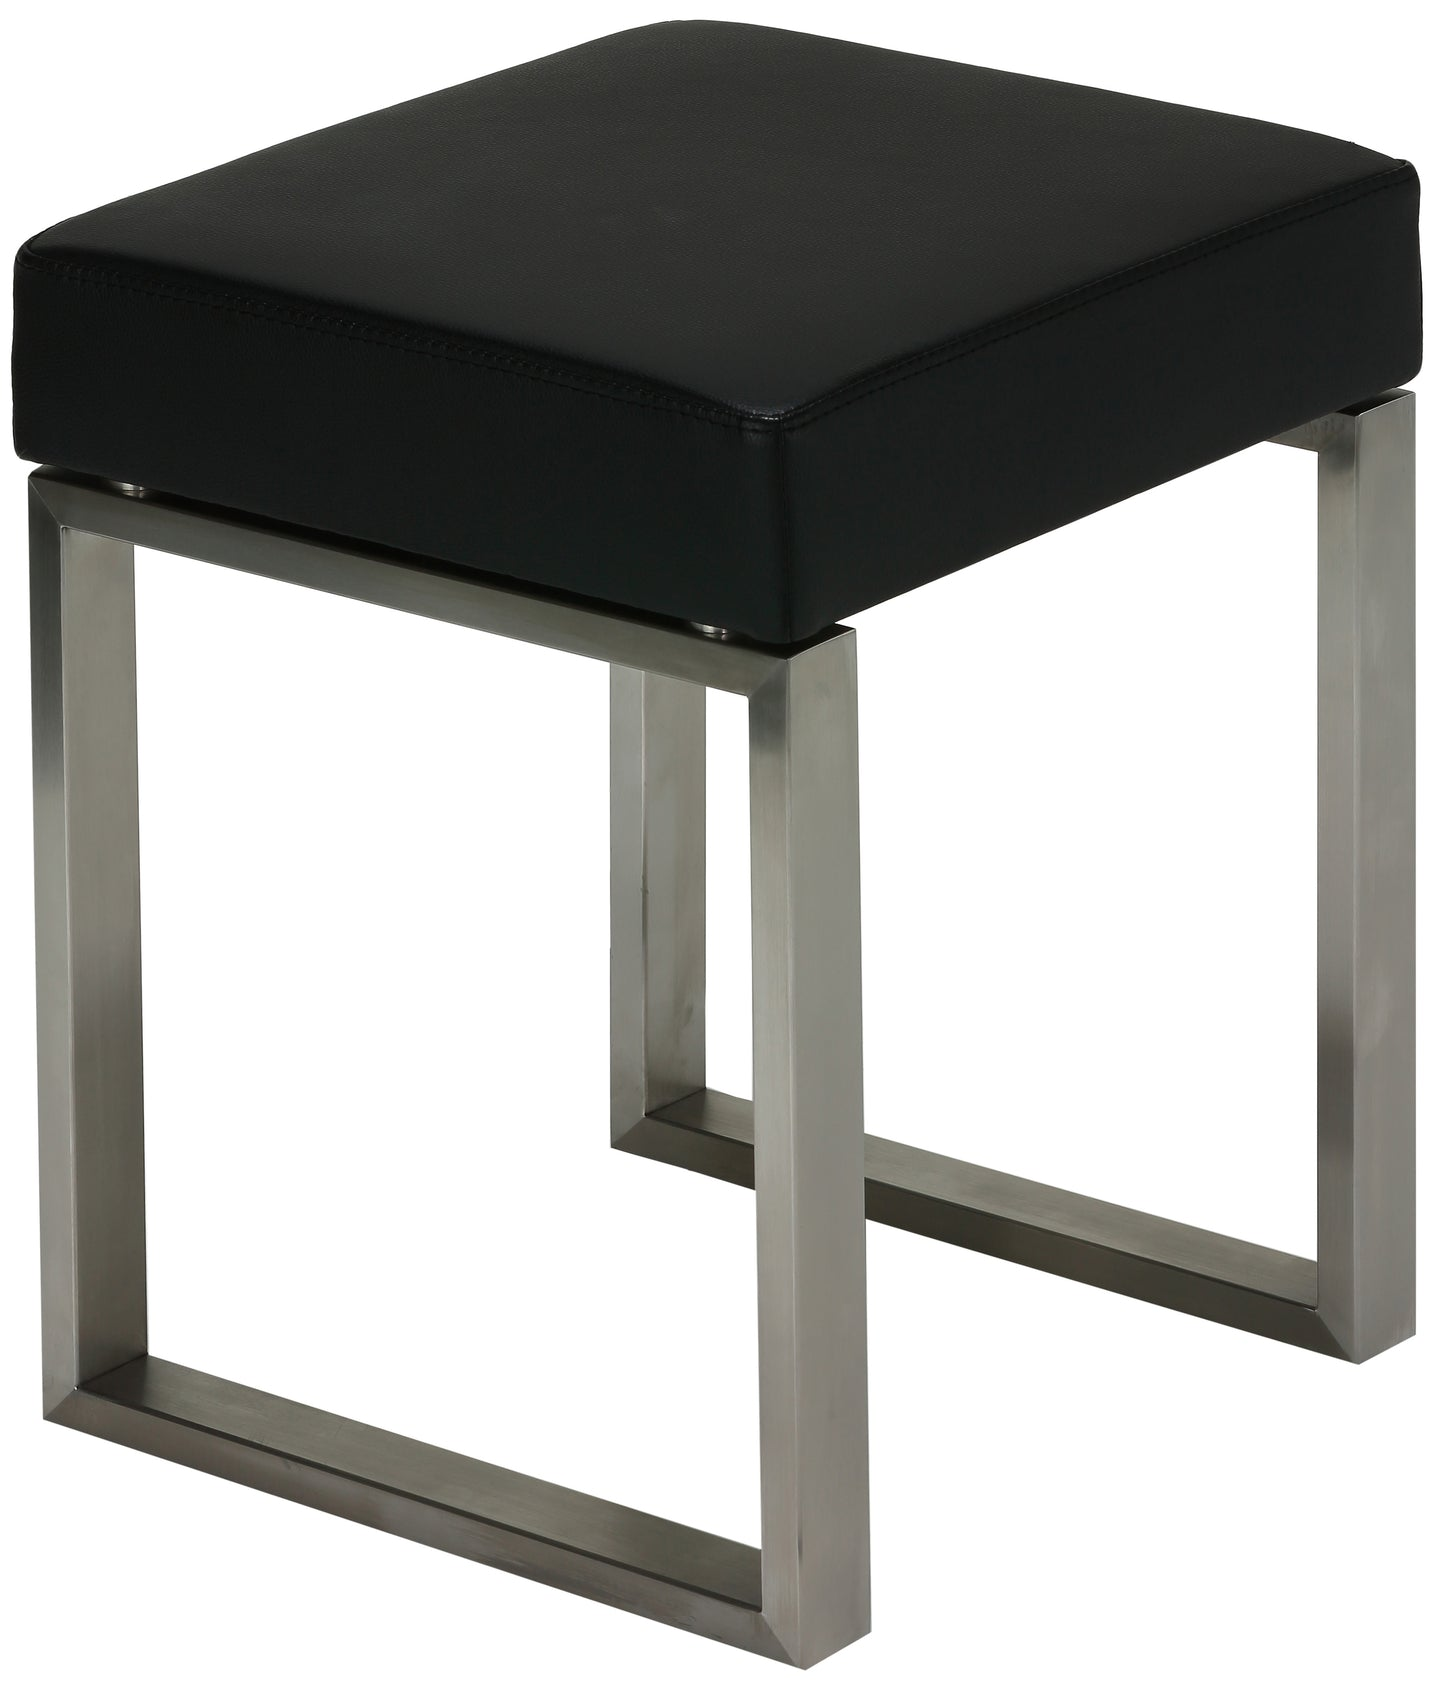 Cortesi Home Tilio Stainless Steel Stool in Black Leather Like Vinyl, Brushed Nickel